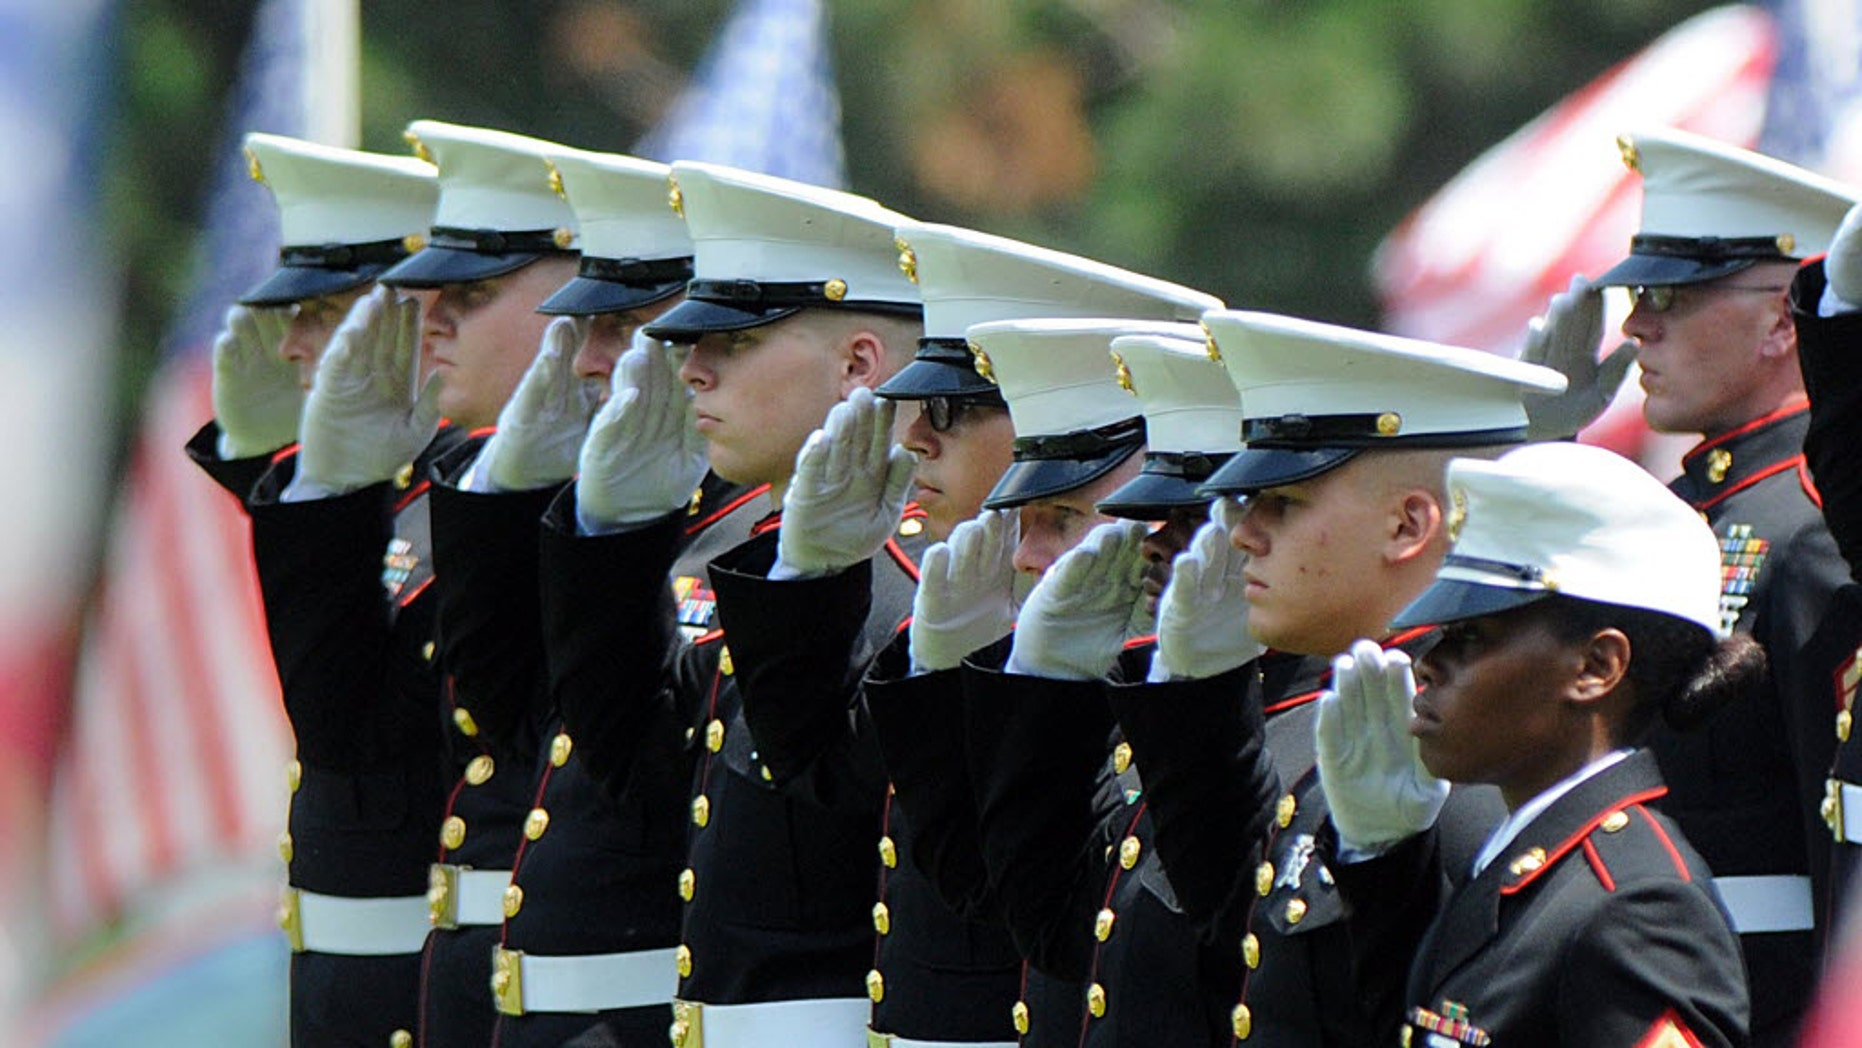 Marines give a final salute to Marine Gunnery Sgt. Thomas Sullivan during ceremony at the Massachusetts Veterans' Memorial Cemetery, Monday, July 27, 2015, in Agawam, Mass. Sullivan was one of five service members killed by a gunman in Chattanooga, Tenn. on July 16. The gunman was killed by police. (Don Tregger/The Republican via AP, Pool)